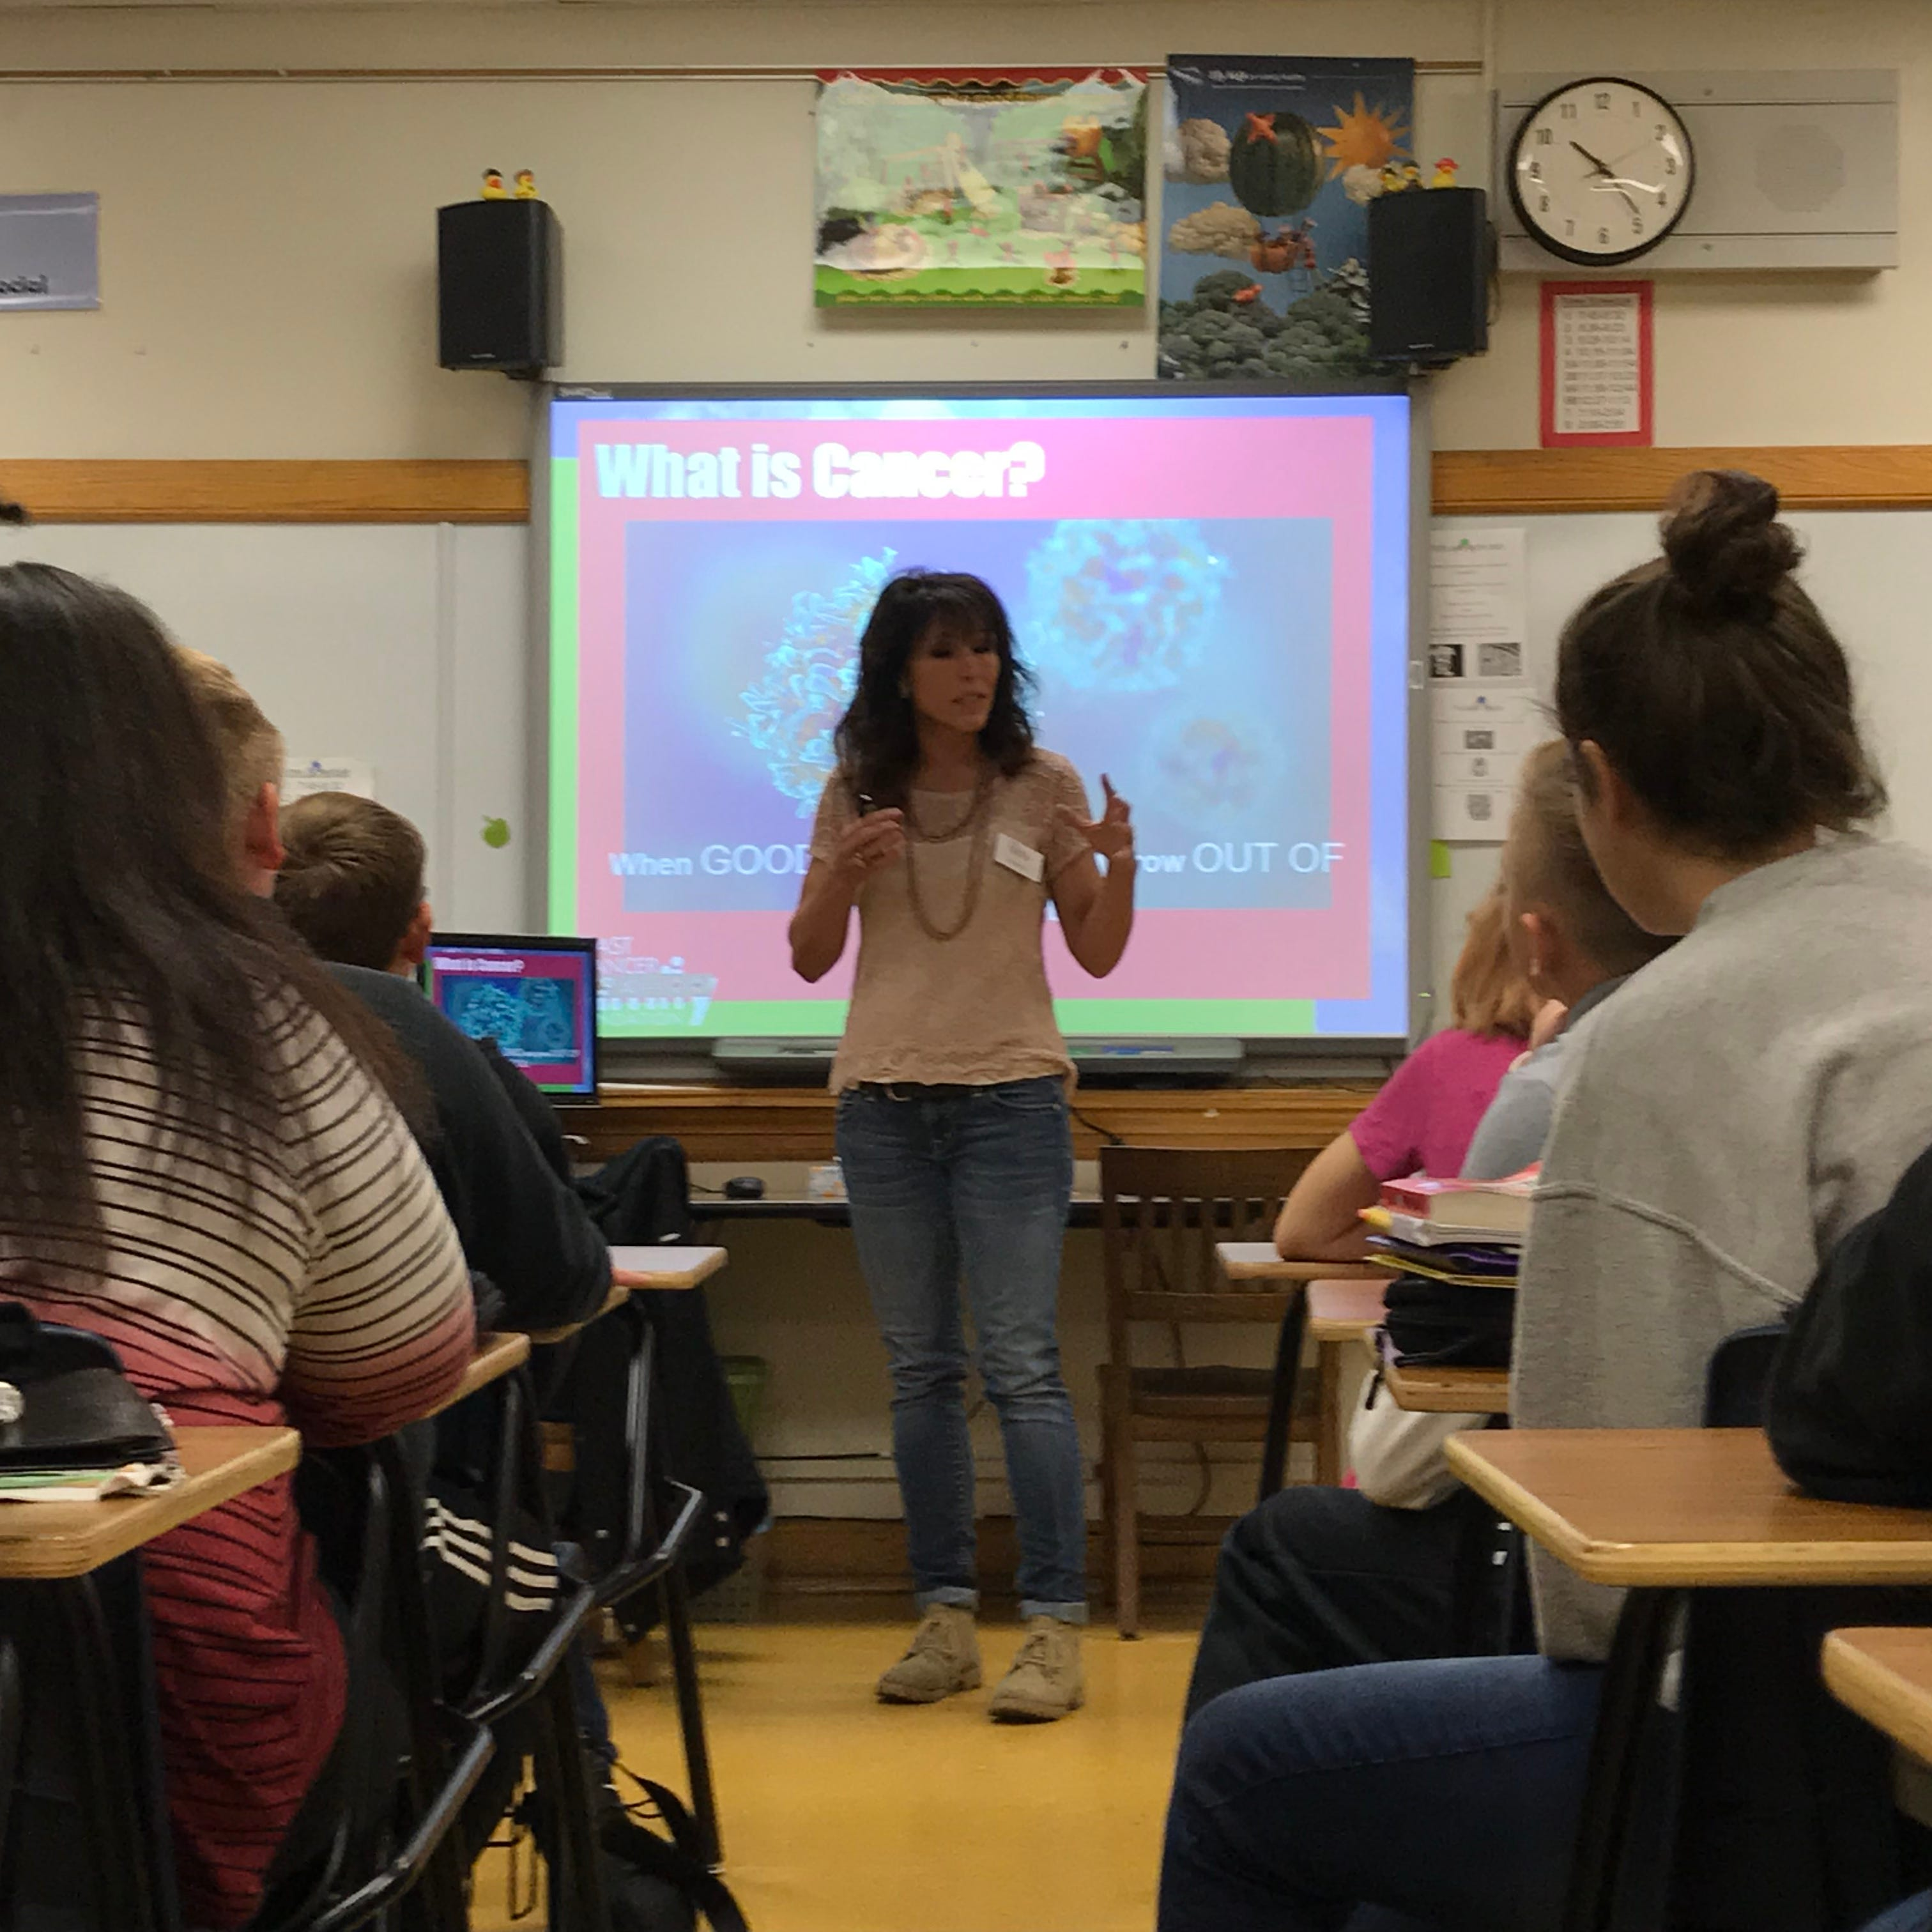 'This message is really for everyone': She brings breast cancer prevention to school